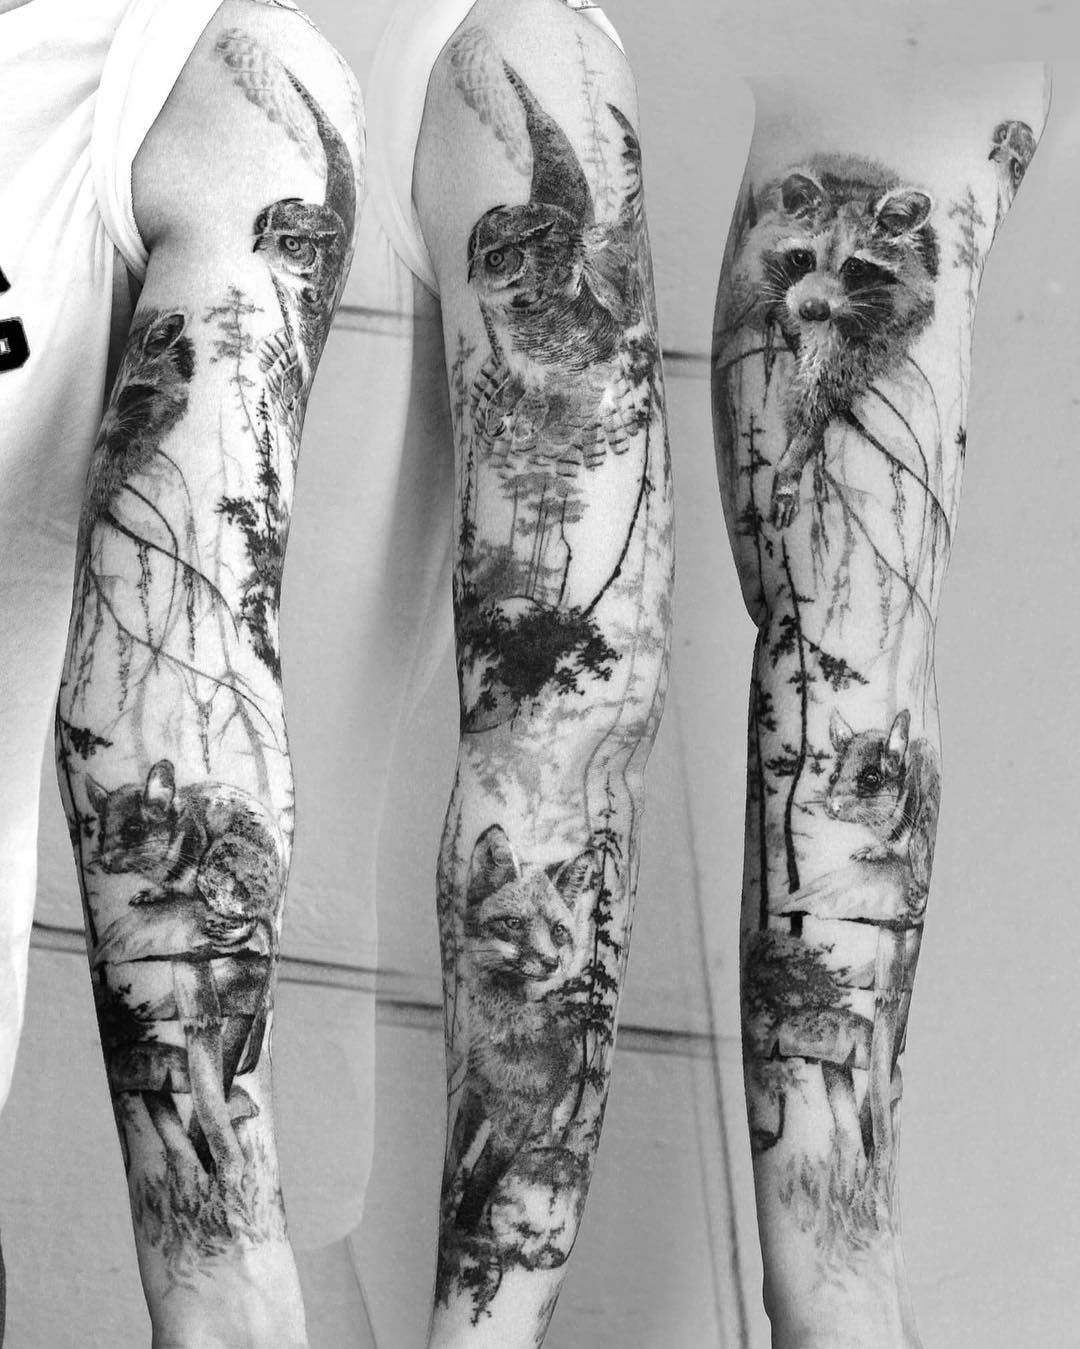 Marked For Life Tattoos And Gangs Nature Tattoo Sleeve Sleeve Tattoos Tattoos